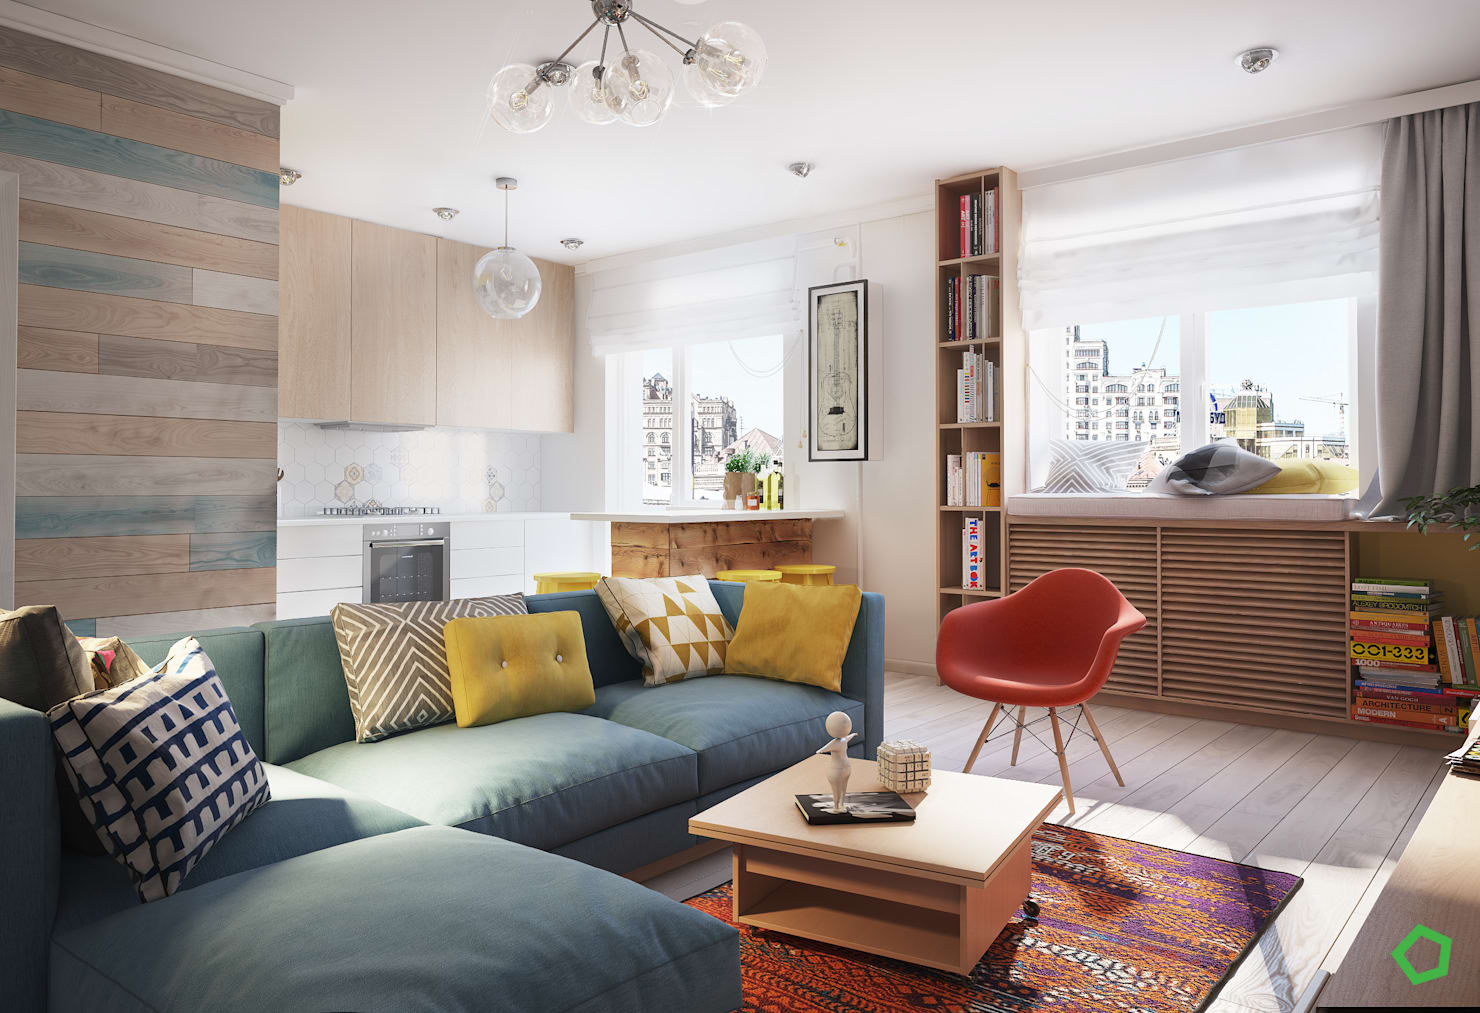 A modern apartment for cool, creative city dwellers